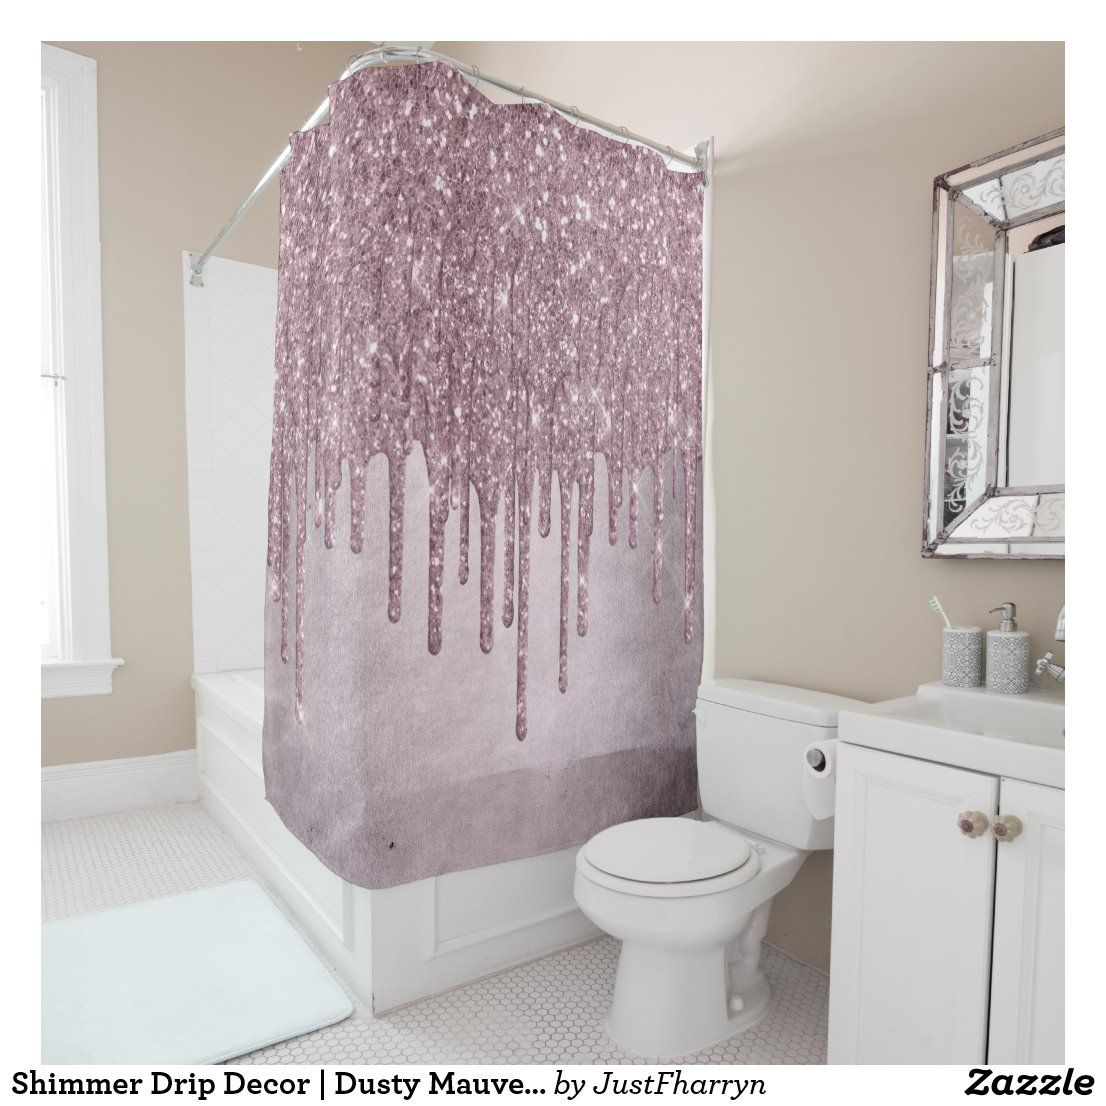 Shimmer Drip Decor Dusty Mauve Pink Ice Drizzle Shower Curtain